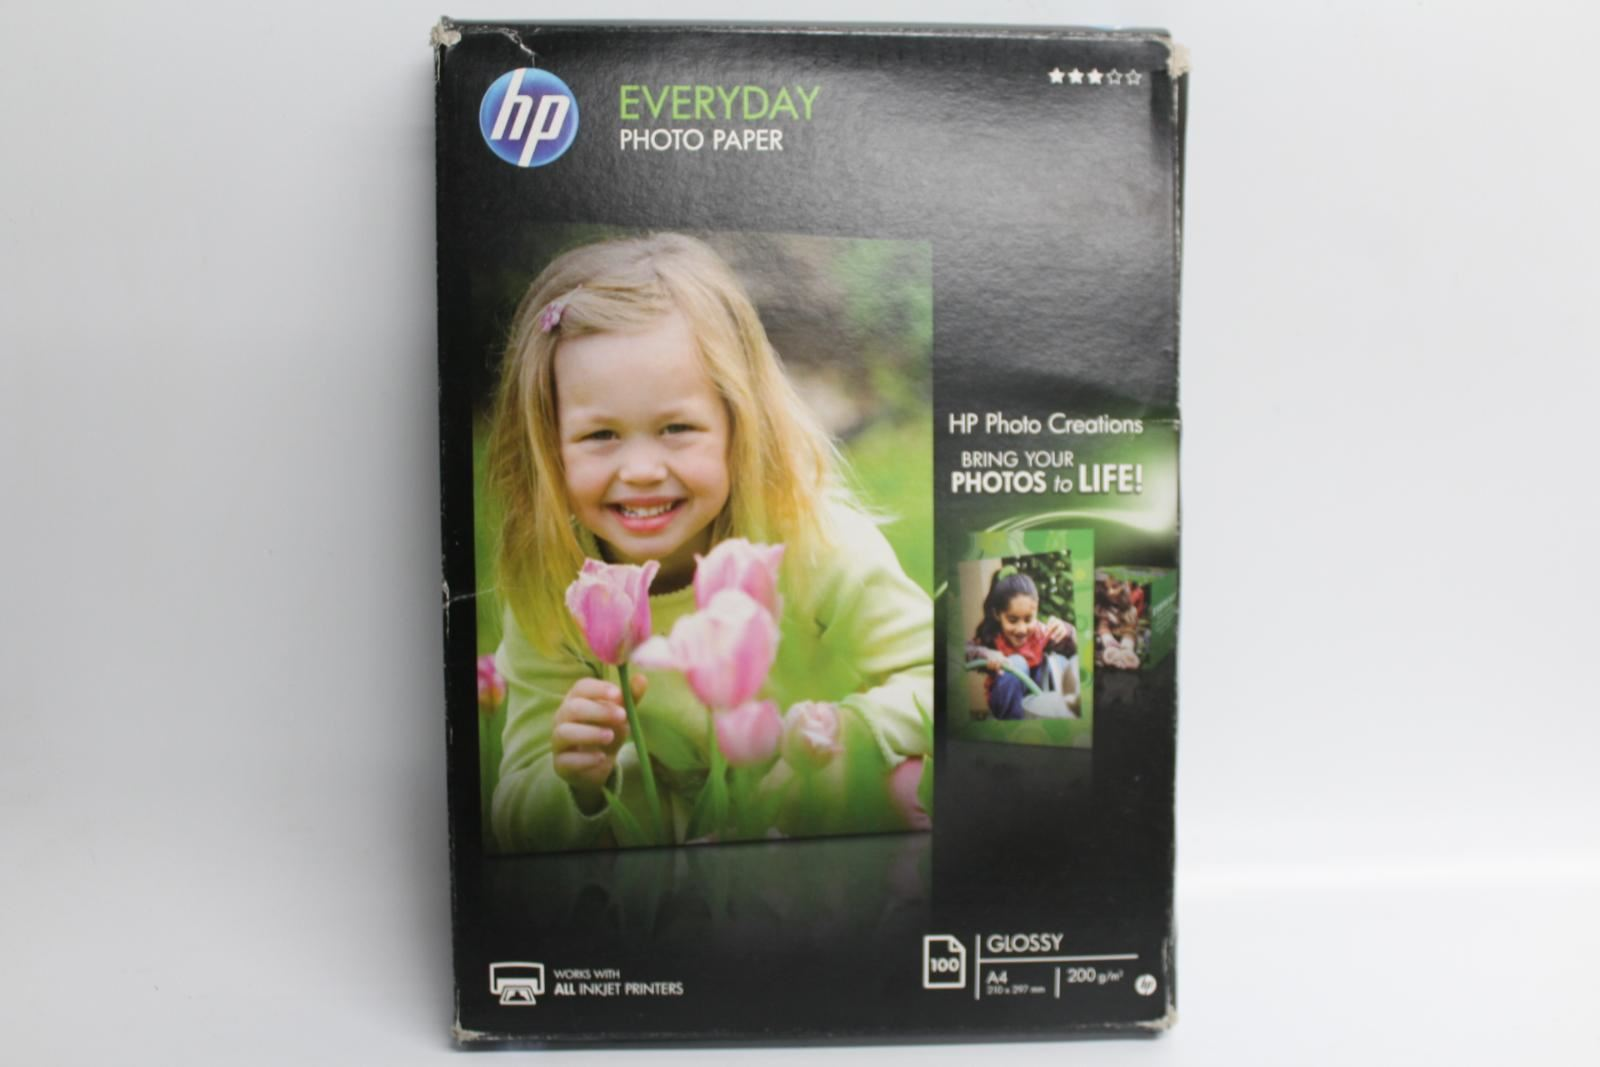 HP-Everyday-A4-Glossy-Photograph-Paper-210x297mm-For-Printer-100-Sheets-NEW